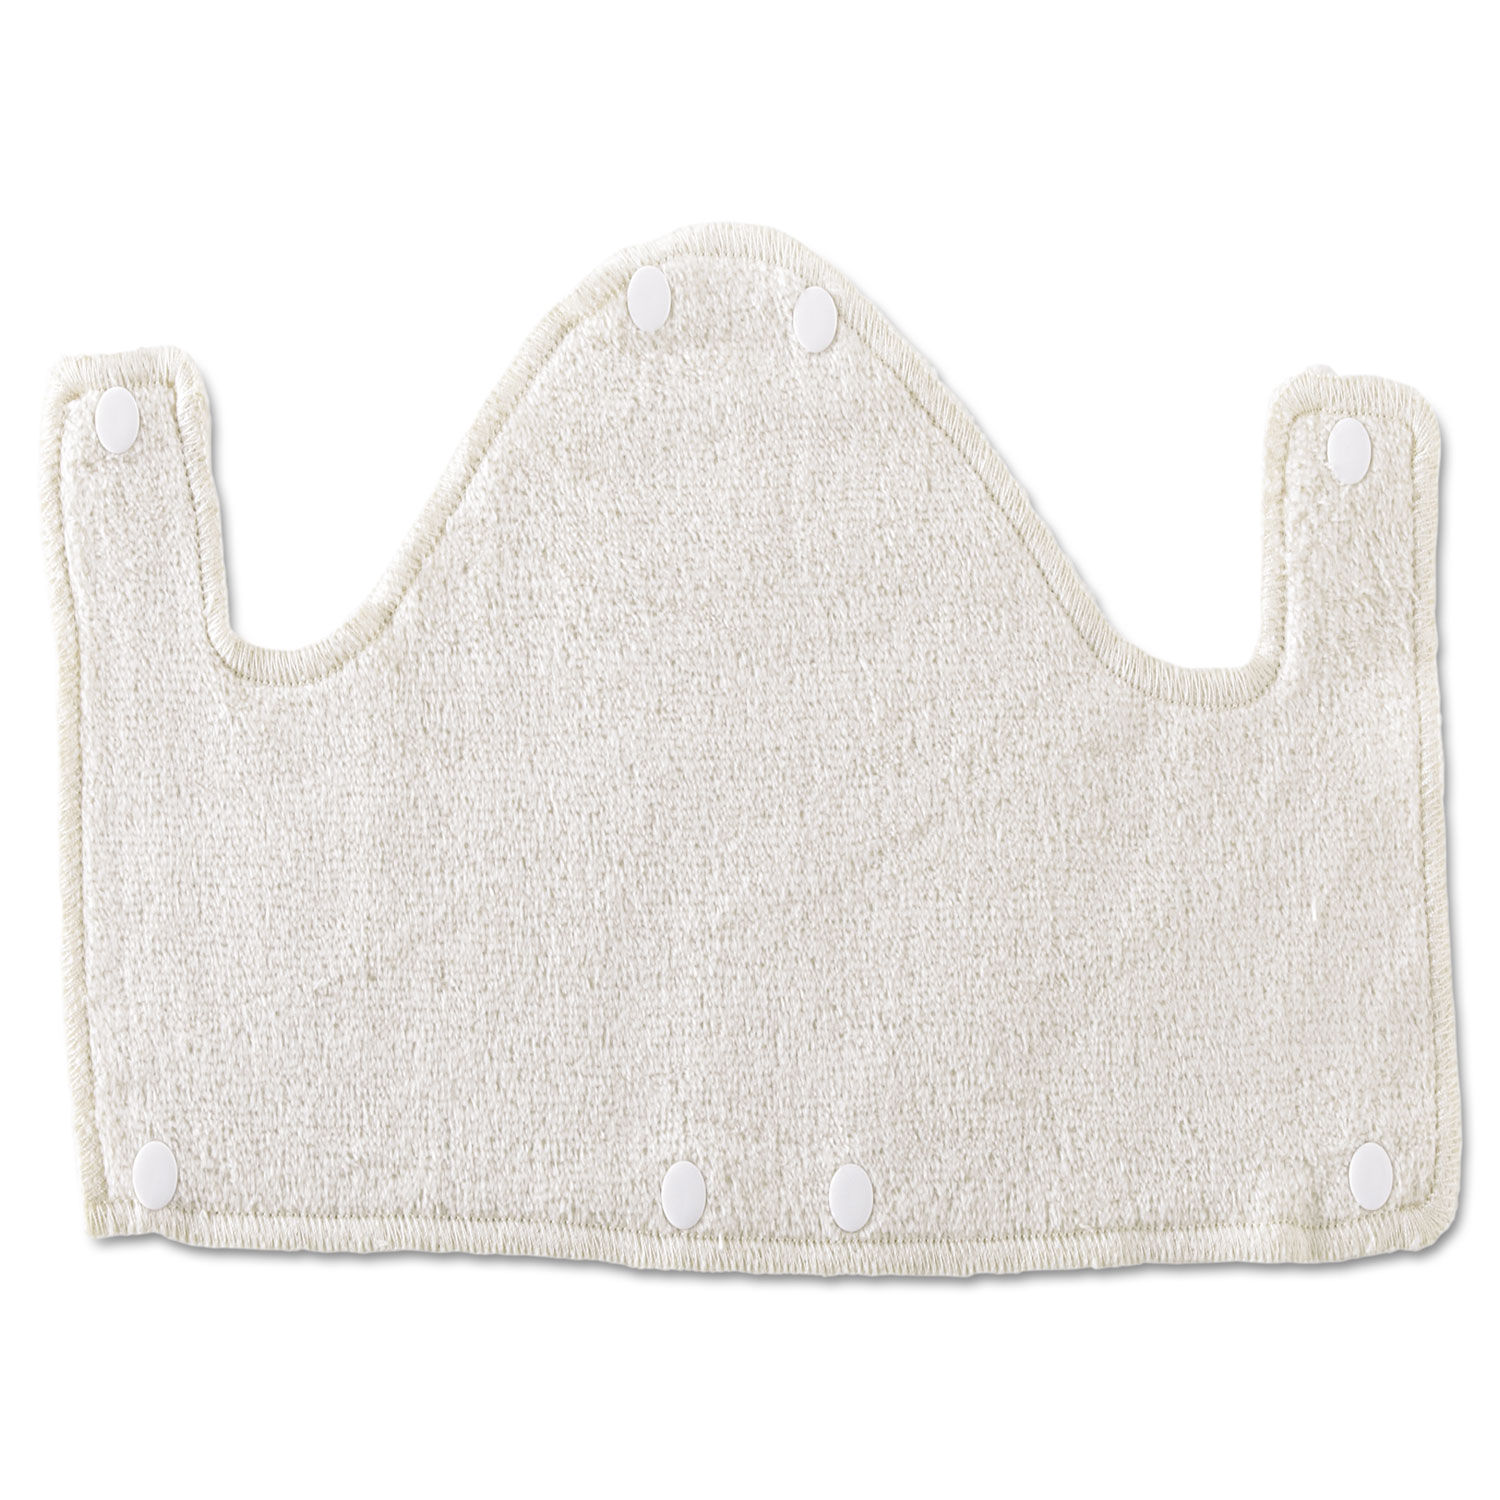 Hard-Hat Sweatband, Cotton, White, One Size Fits All, 10/Pack